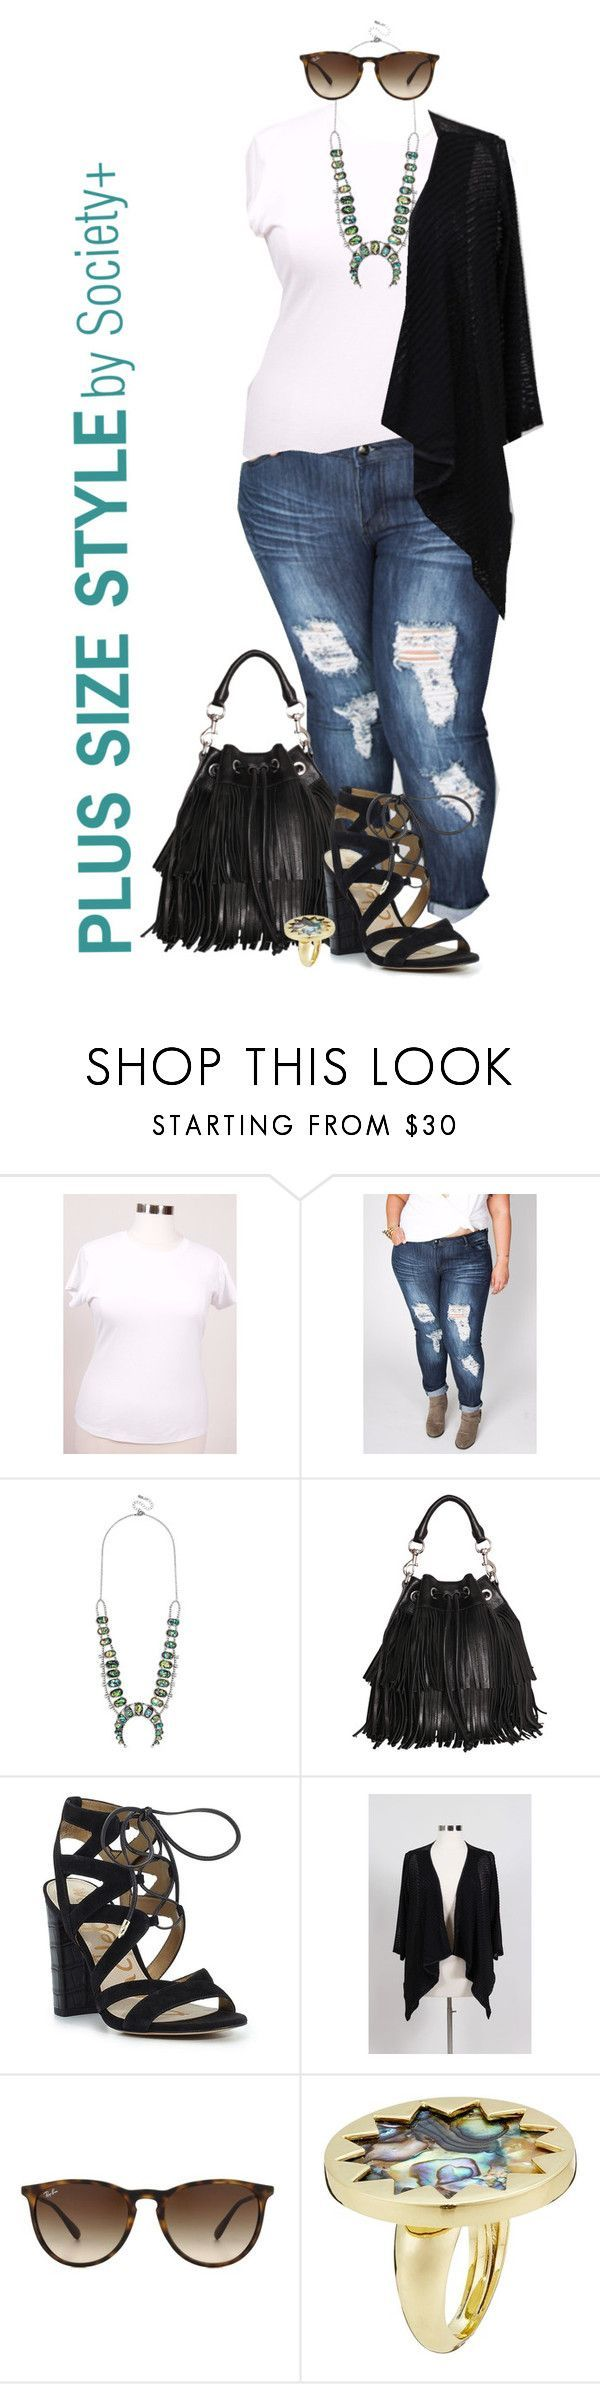 """""""Plus Size Sheer Cardigan - Society+"""" by iamsocietyplus on Polyvore featuring BaubleBar, Rebecca Minkoff, Sam Edelman, Ray-Ban, House of Harlow 1960, plussize, plussizefashion, societyplus and iamsocietyplus"""